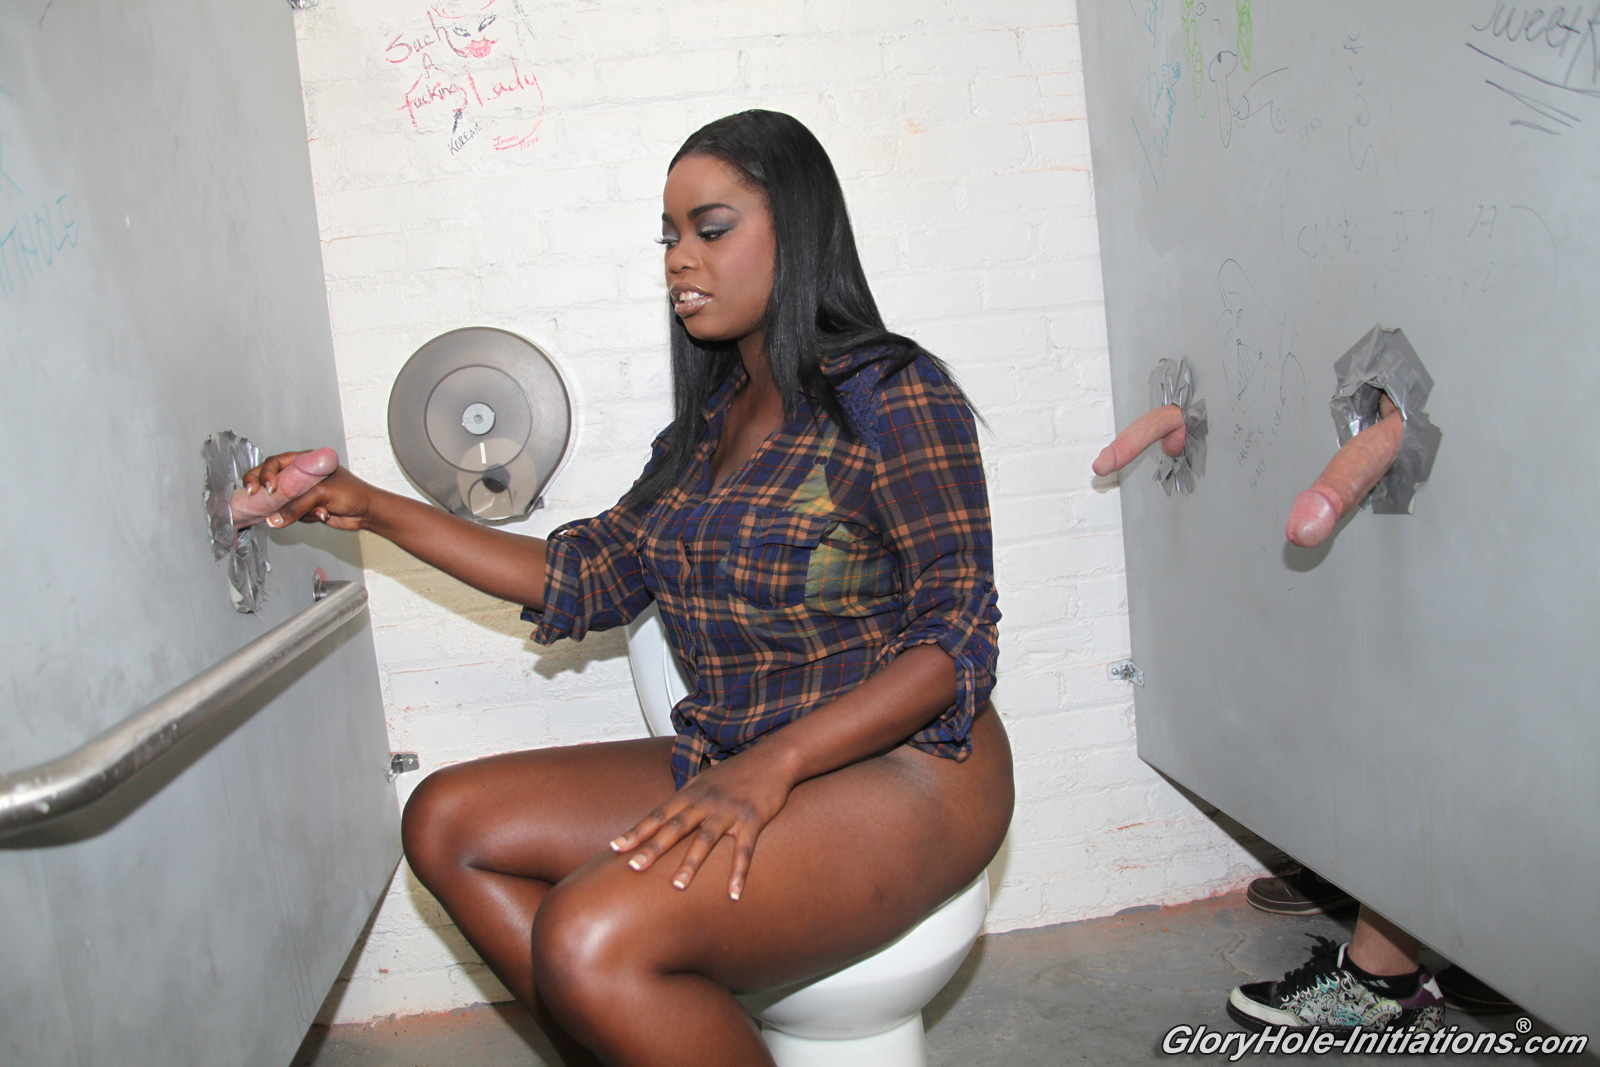 Black girls at glory hole